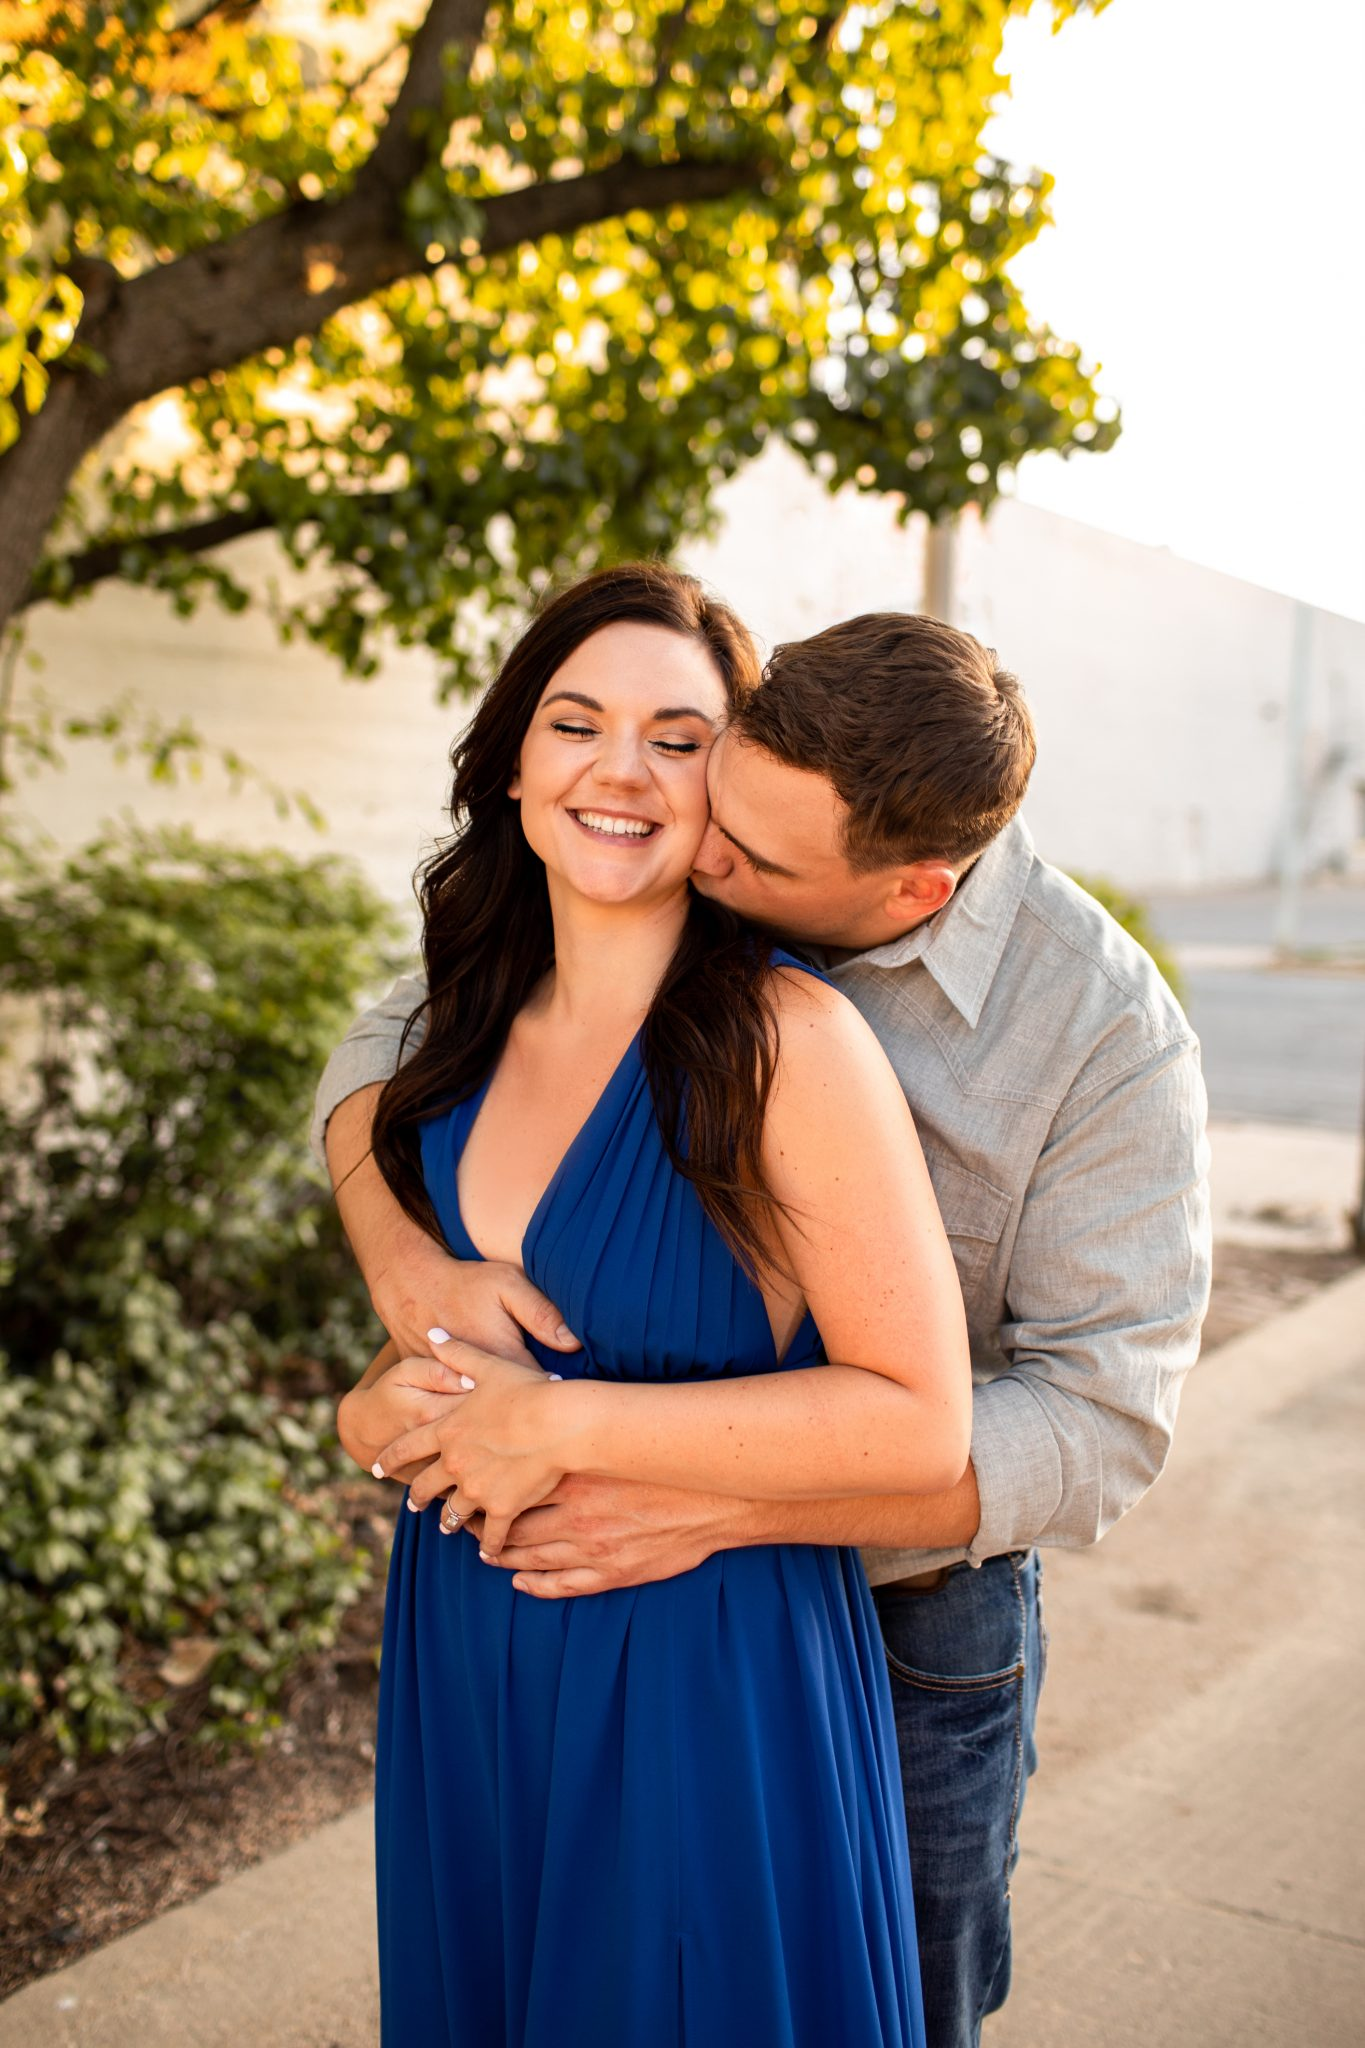 Trevor-Haley-Wichita-Engagement-Session-211